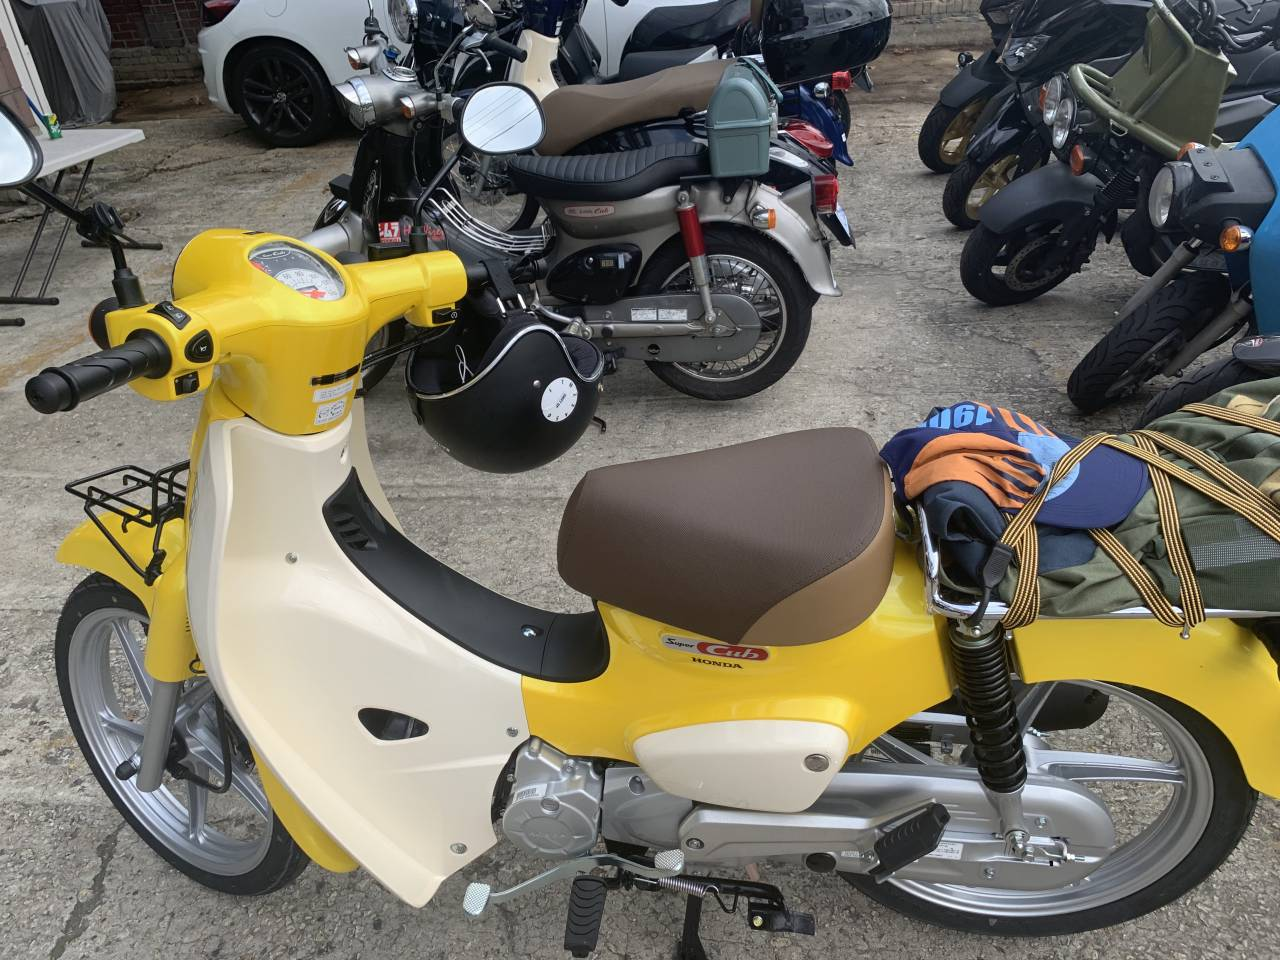 Customer S Motorcycle No Name S Honda Super Cub 110 C110 Custom Webike